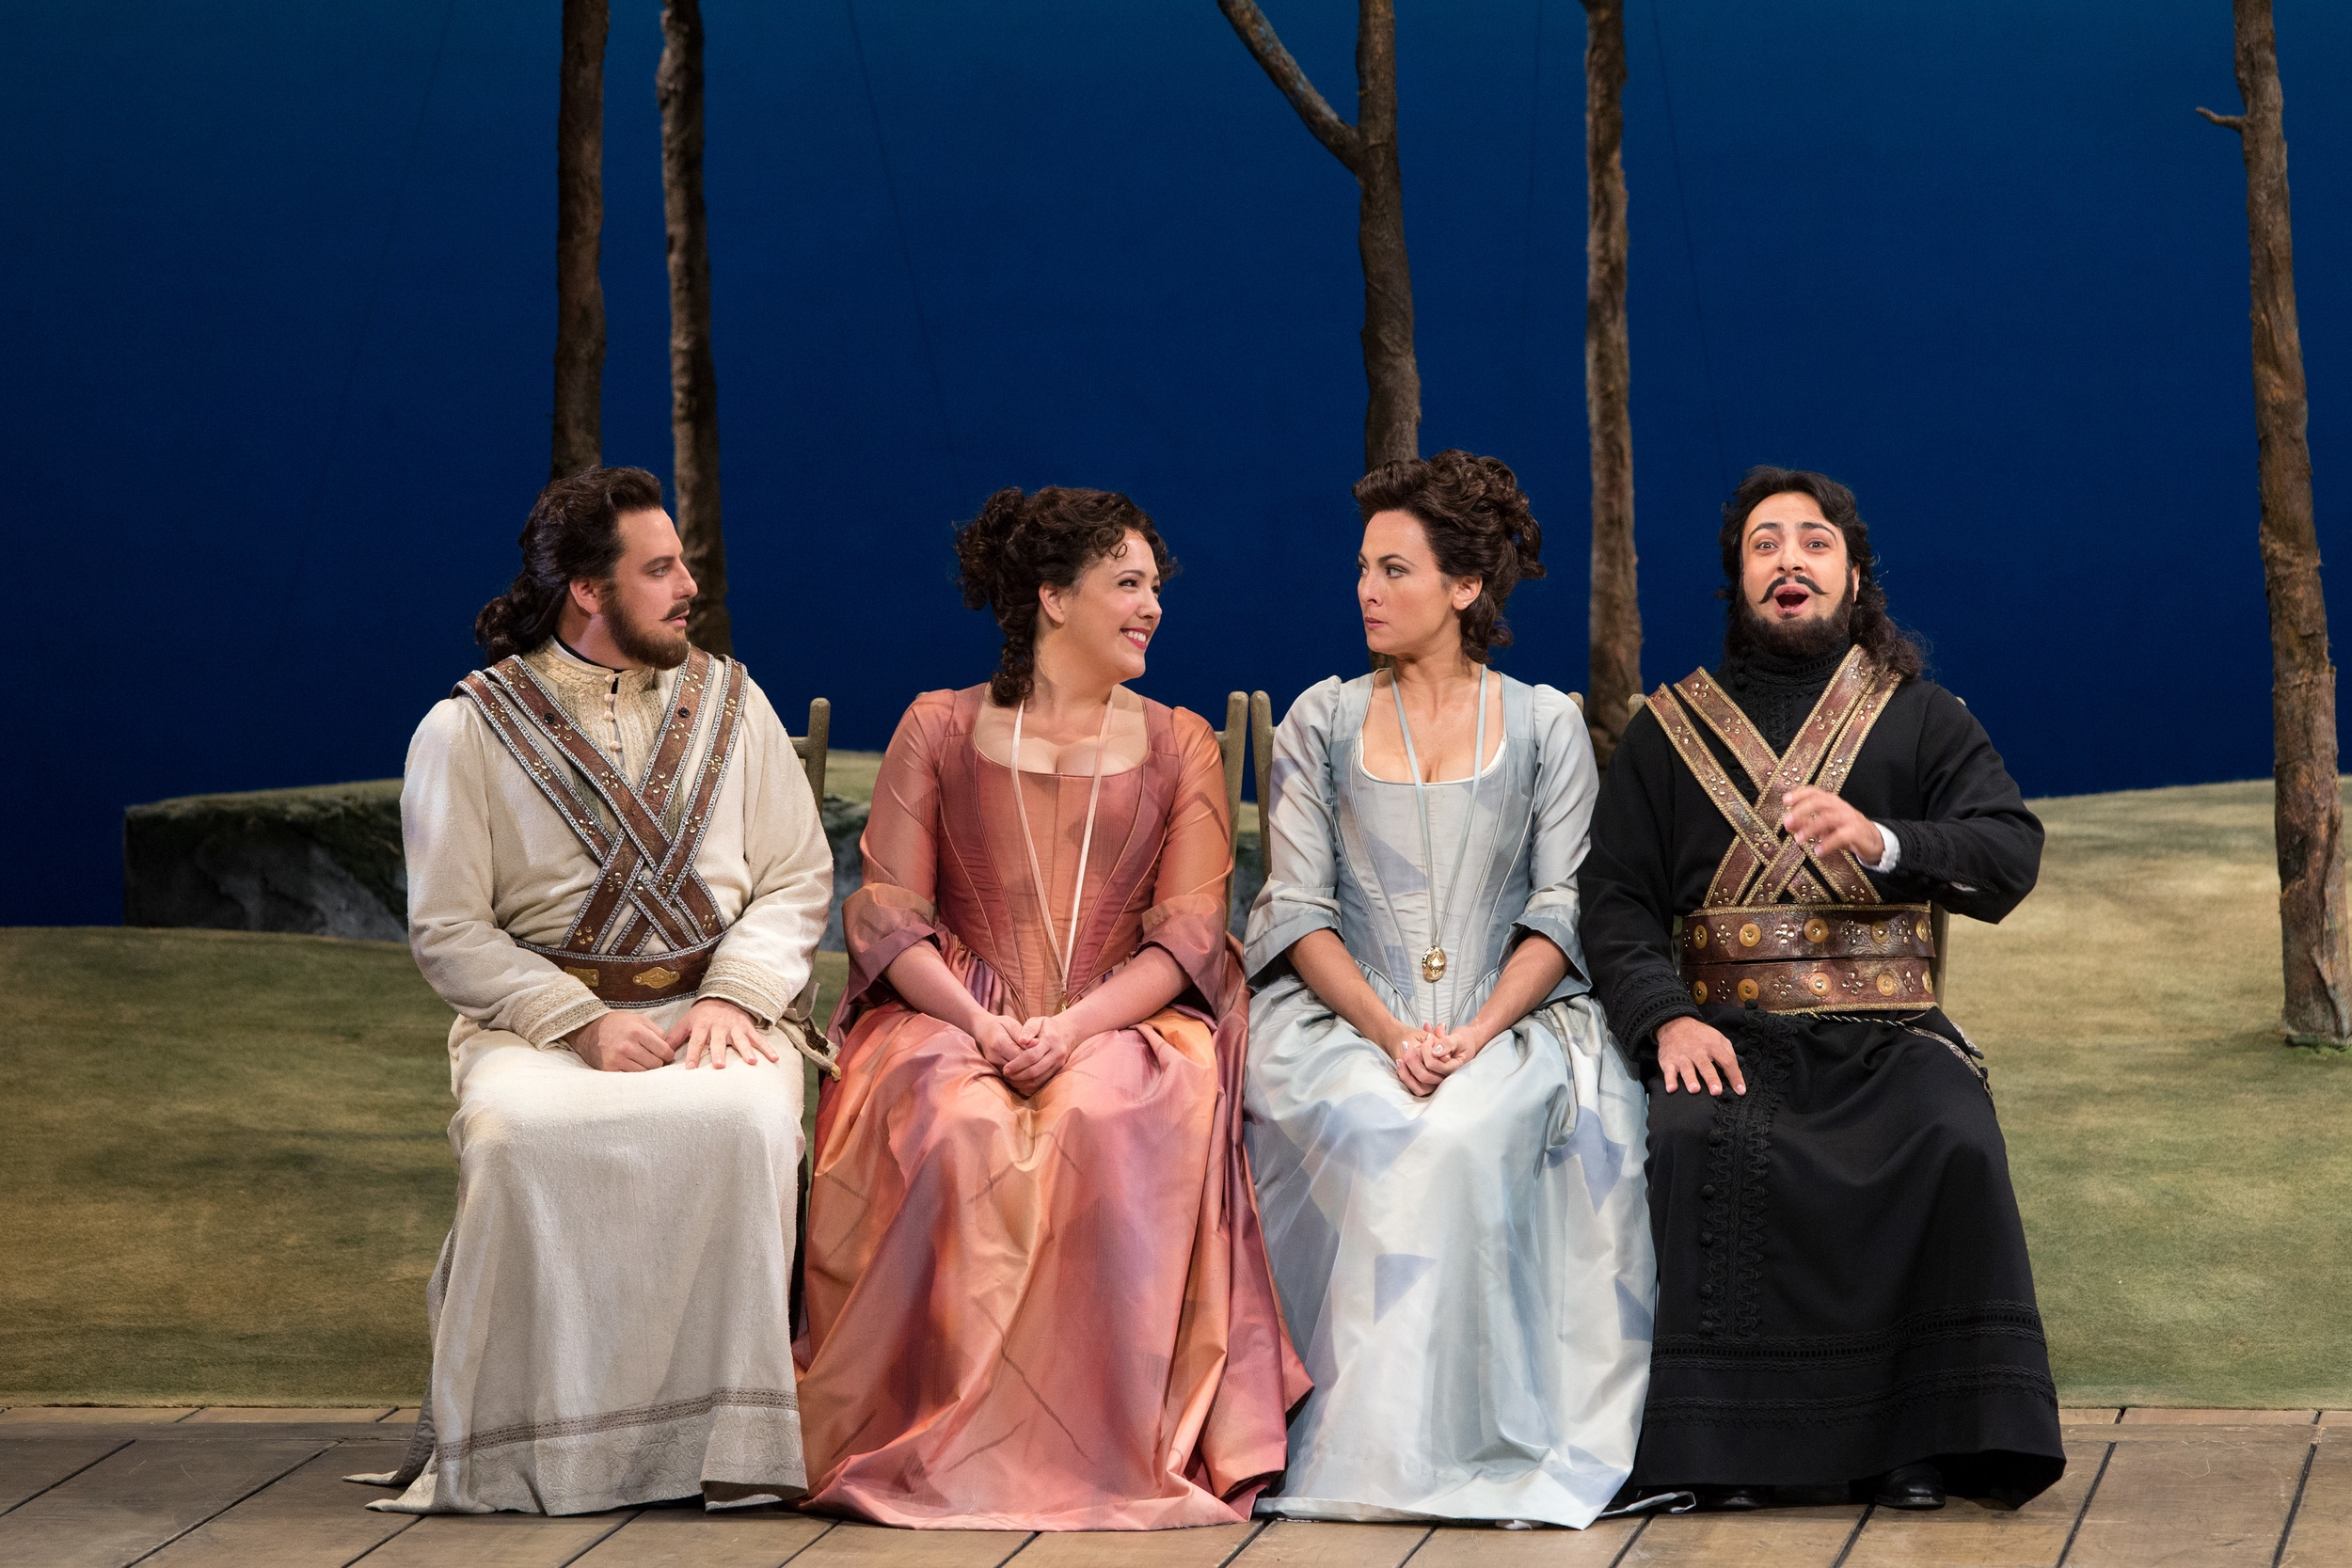 Matthew Polenzani as Ferrando, Susanna Phillips as Fiordiligi, Isabel Leonard as Dorabella, and Rodion Pogossov as Guglielmo in  Cosi Fan Tutte .  Photo by Marty Sohl; courtesy of Metropolitan Opera.